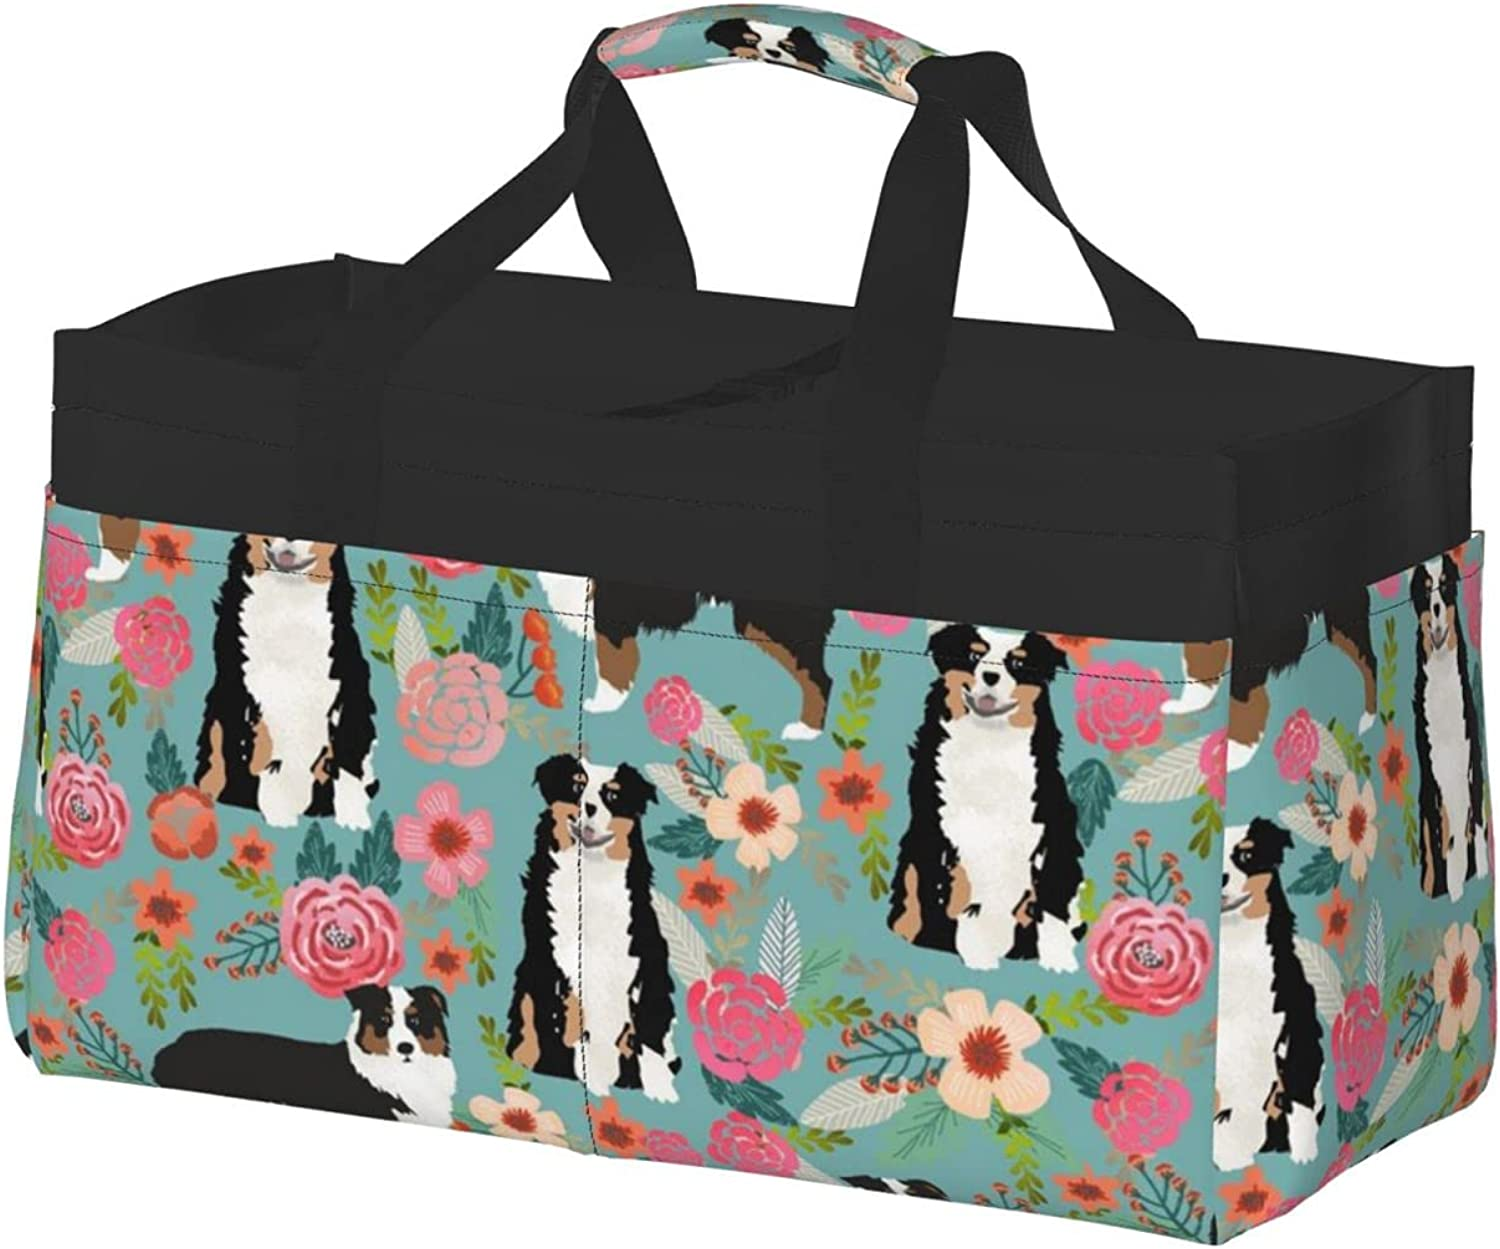 Extra Large Utility Tote Bag - Limited time trial price famous Canvas Oversized Basket Beach Reu